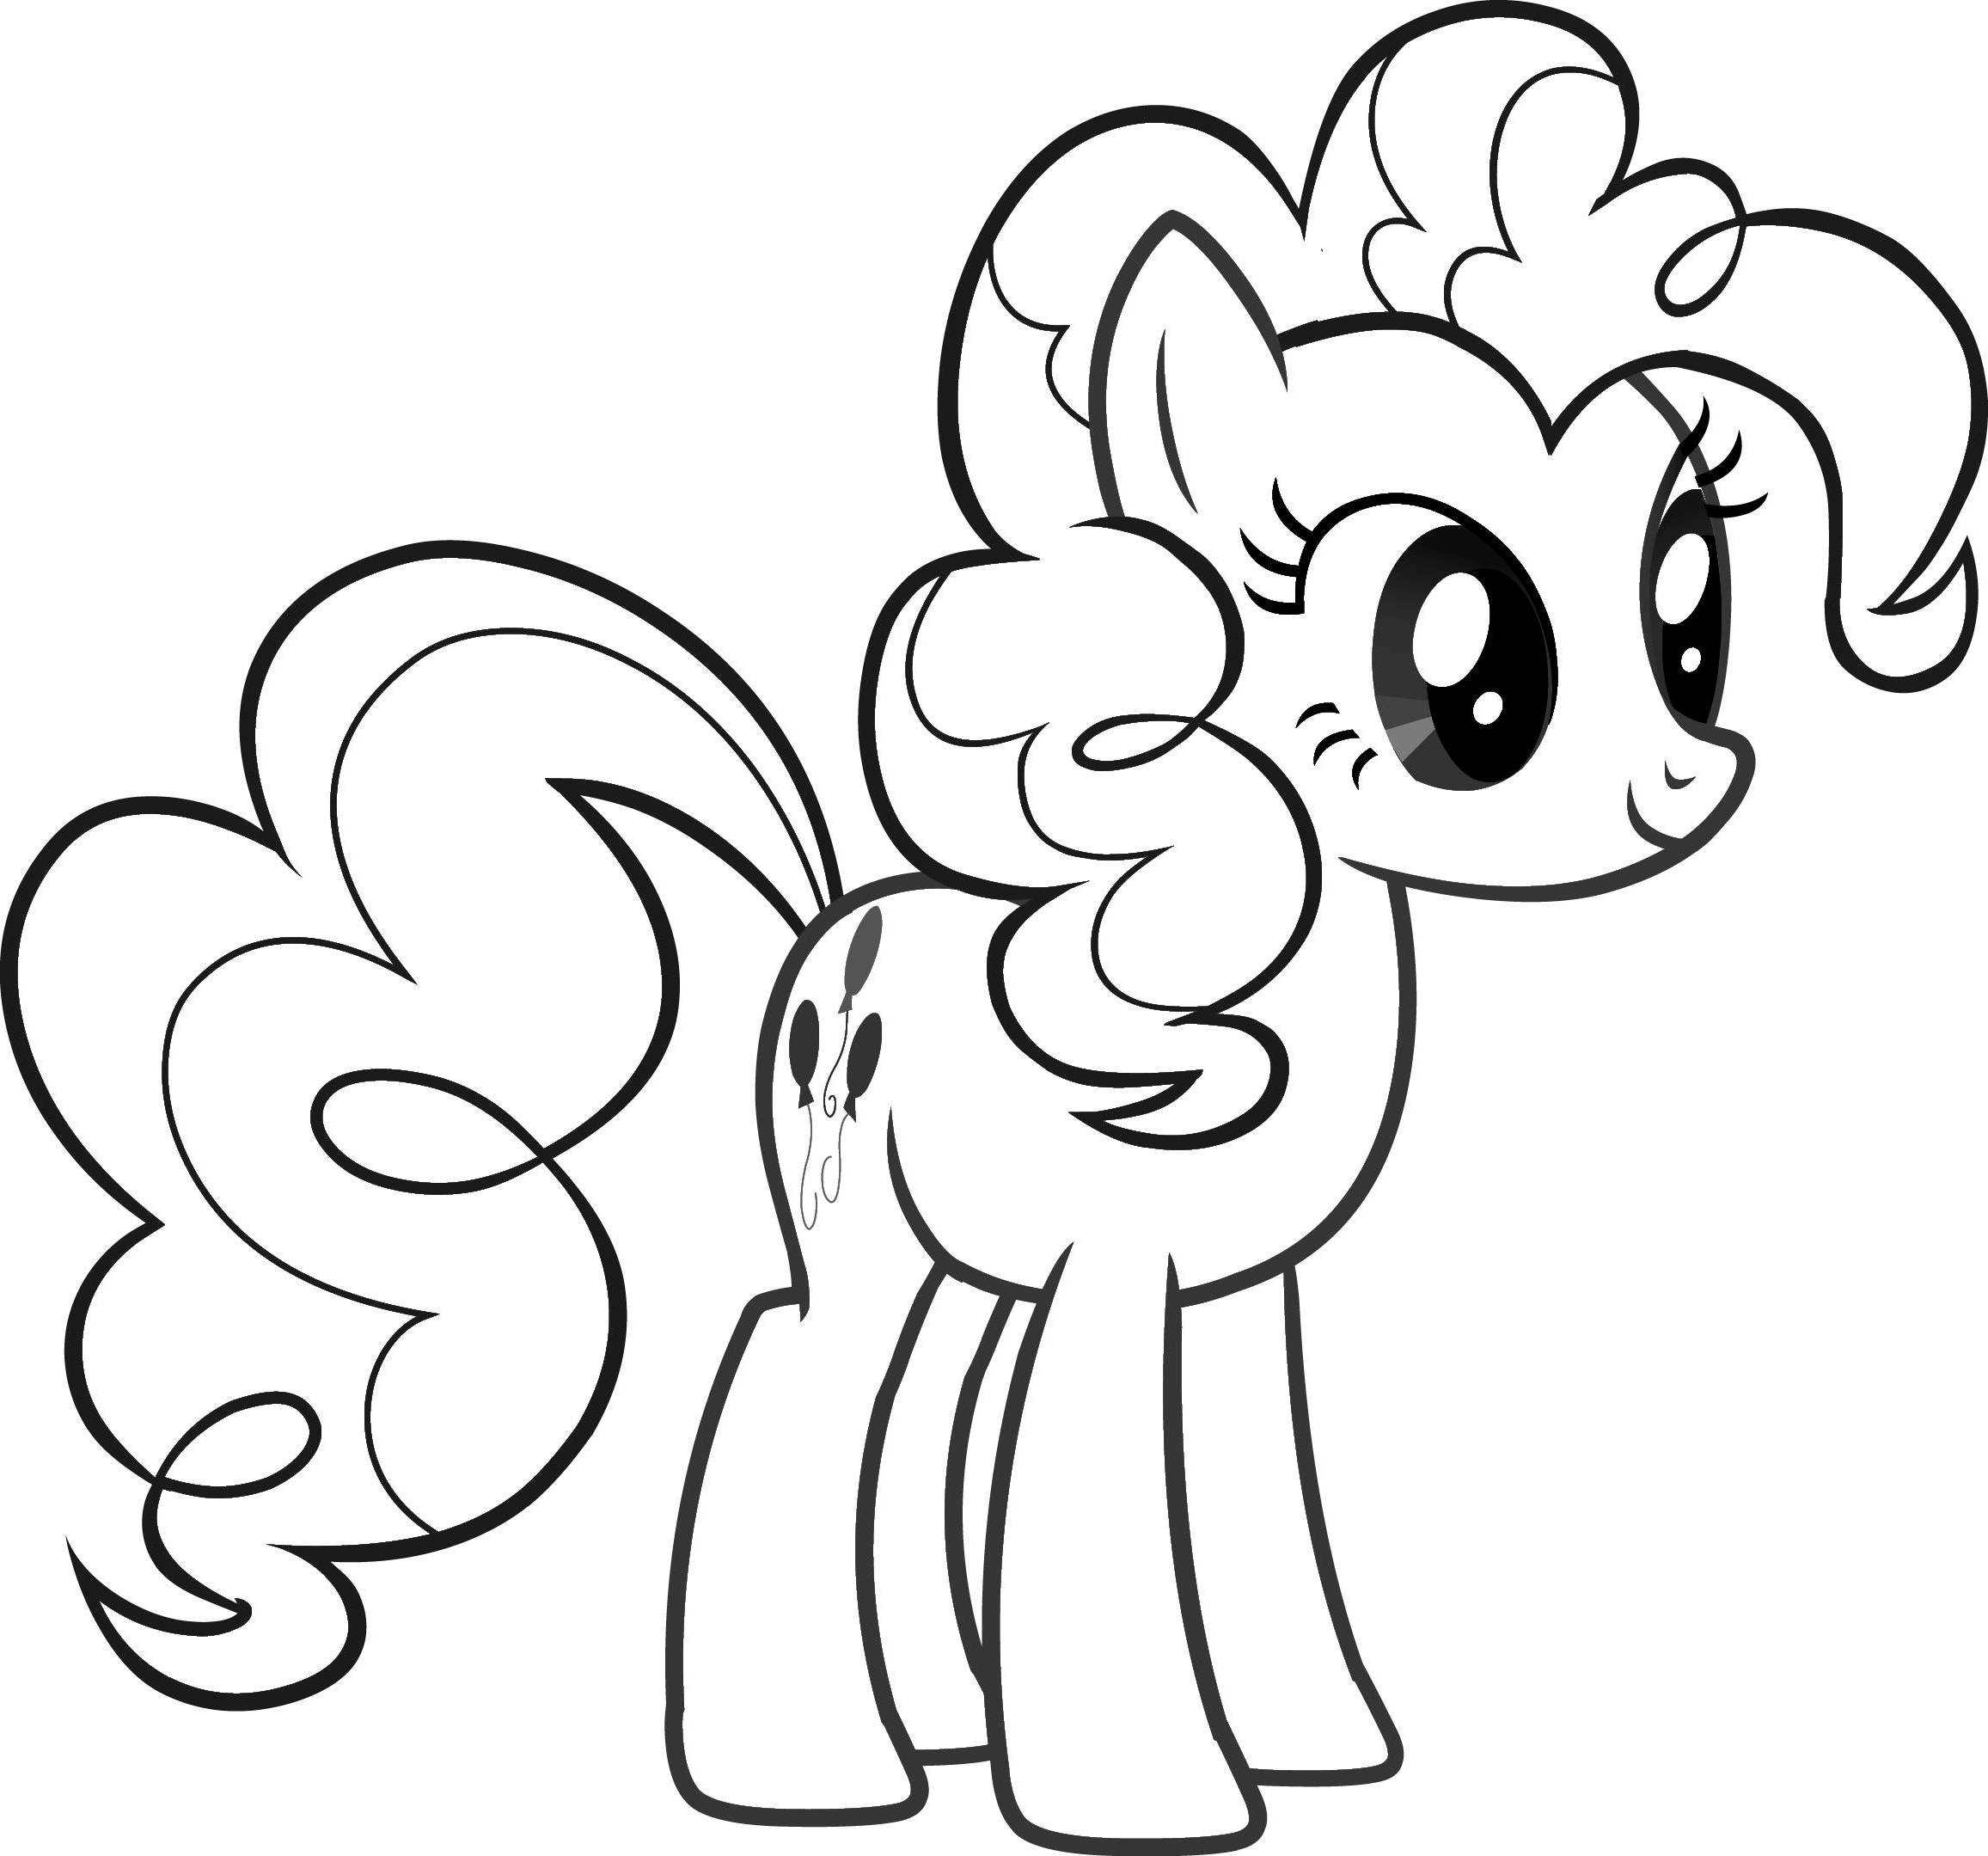 disney cute easy coloring pages cute disney coloring pages to download and print for free coloring easy disney cute pages